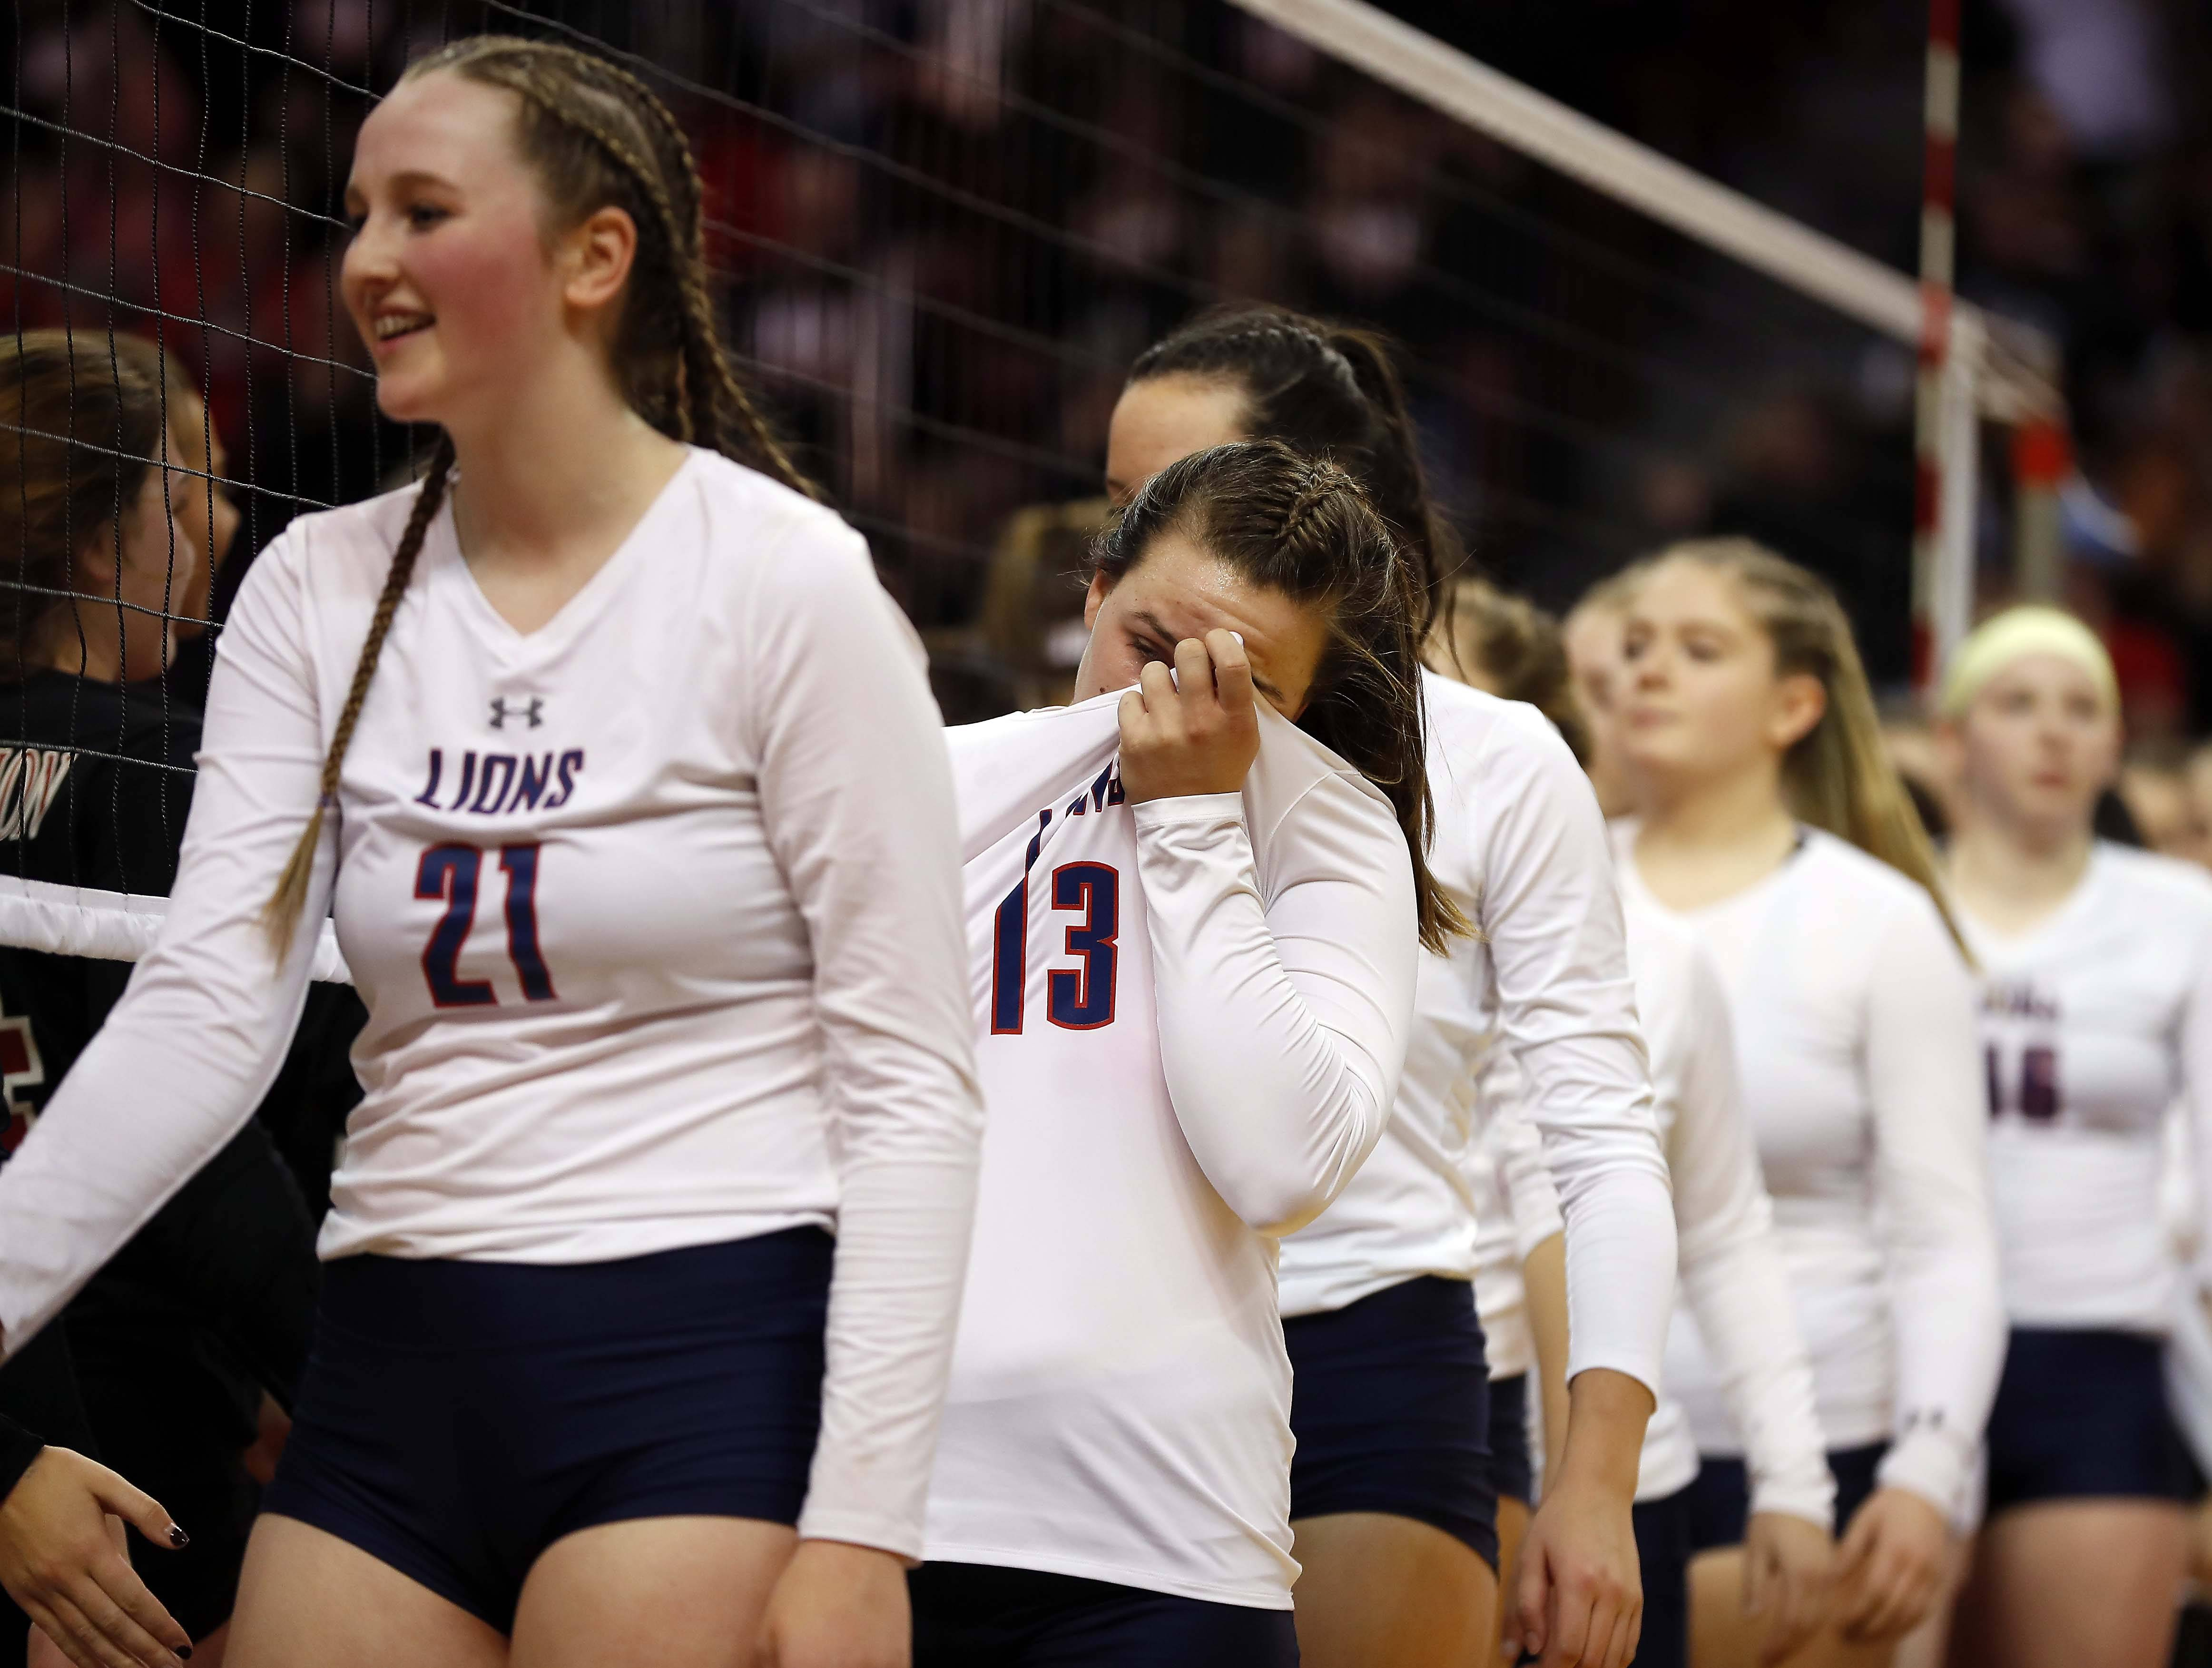 Saint Viator's Michaela Mueller (C) (13) and her teammates react after their loss in the semifinals of the IHSA Class 3A state girls volleyball tournament at Redbird Arena in Normal.